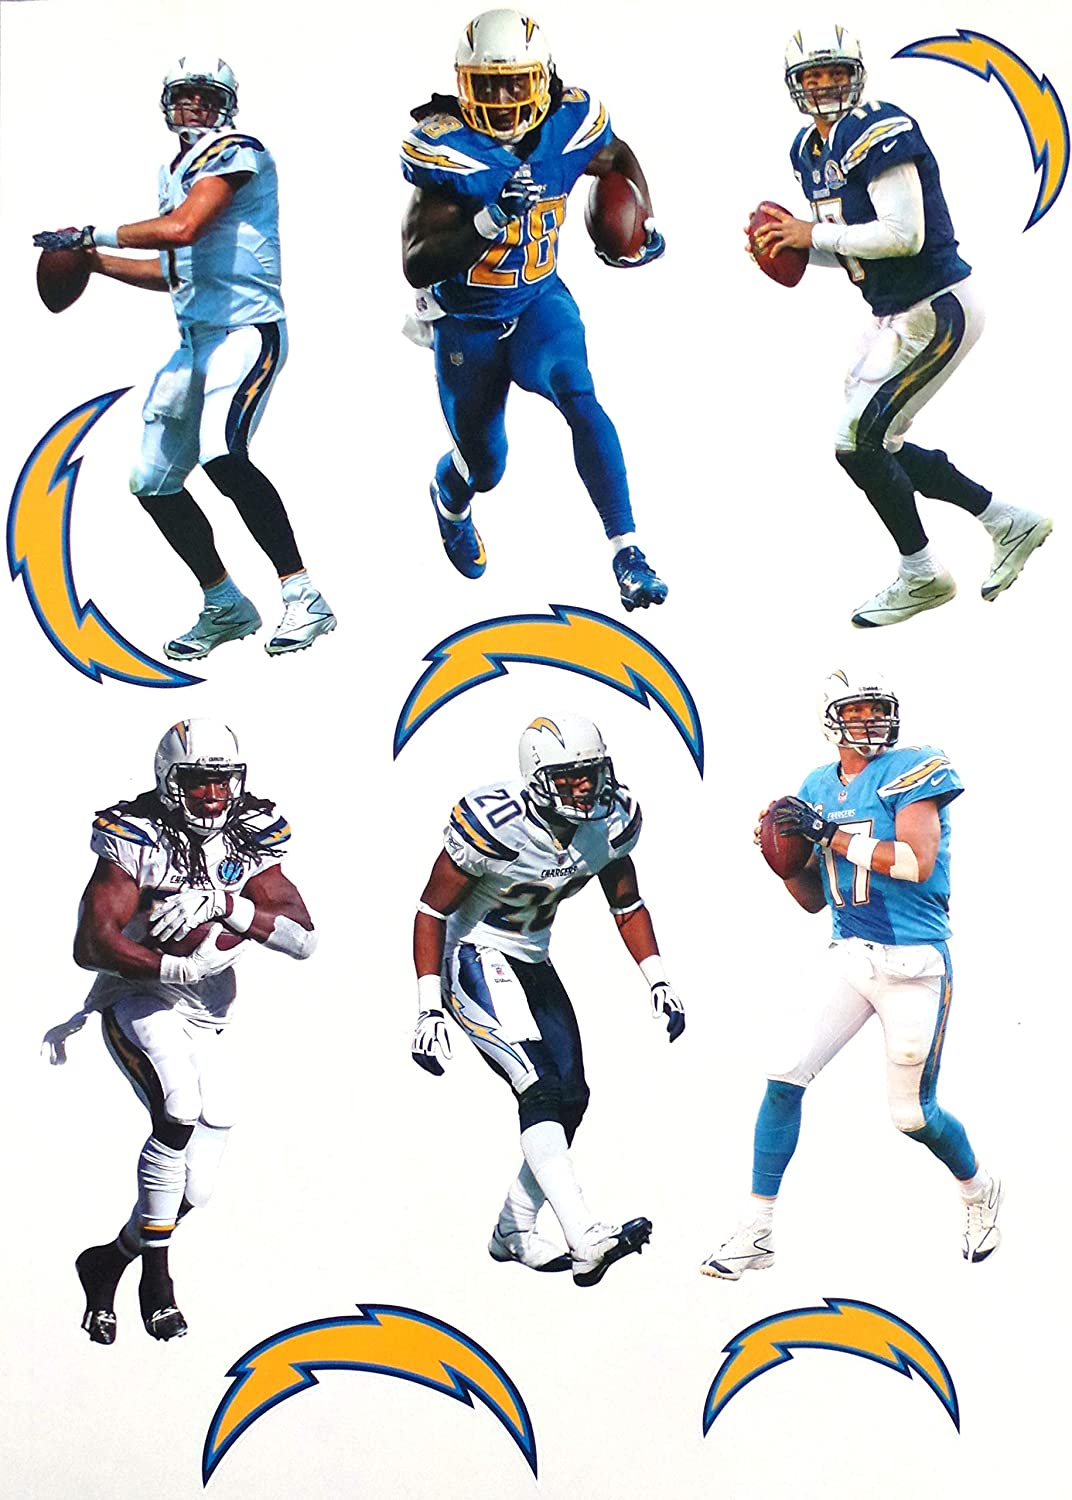 Los Angeles Chargers Mini FATHEAD Team Set 5 Player Graphics + 3 Chargers Logo - Official NFL Vinyl Wall Graphics - Each Player 7